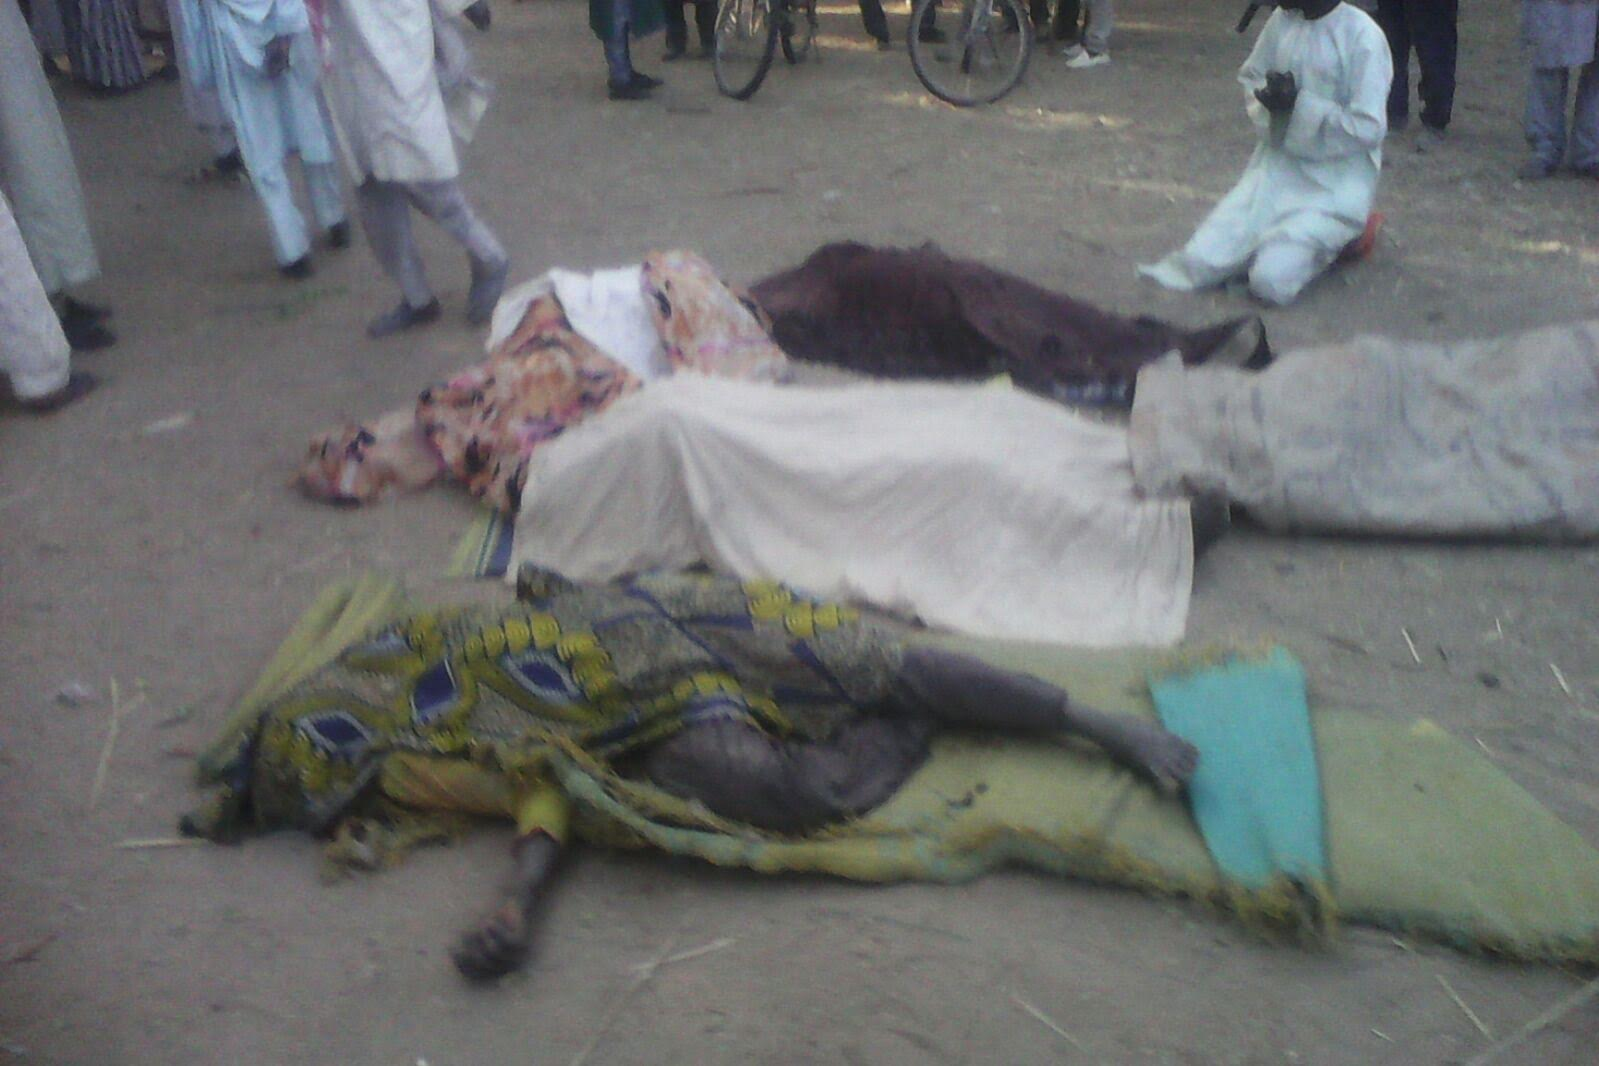 Victims killed by Boko Haram in Maiduguri in recent attack